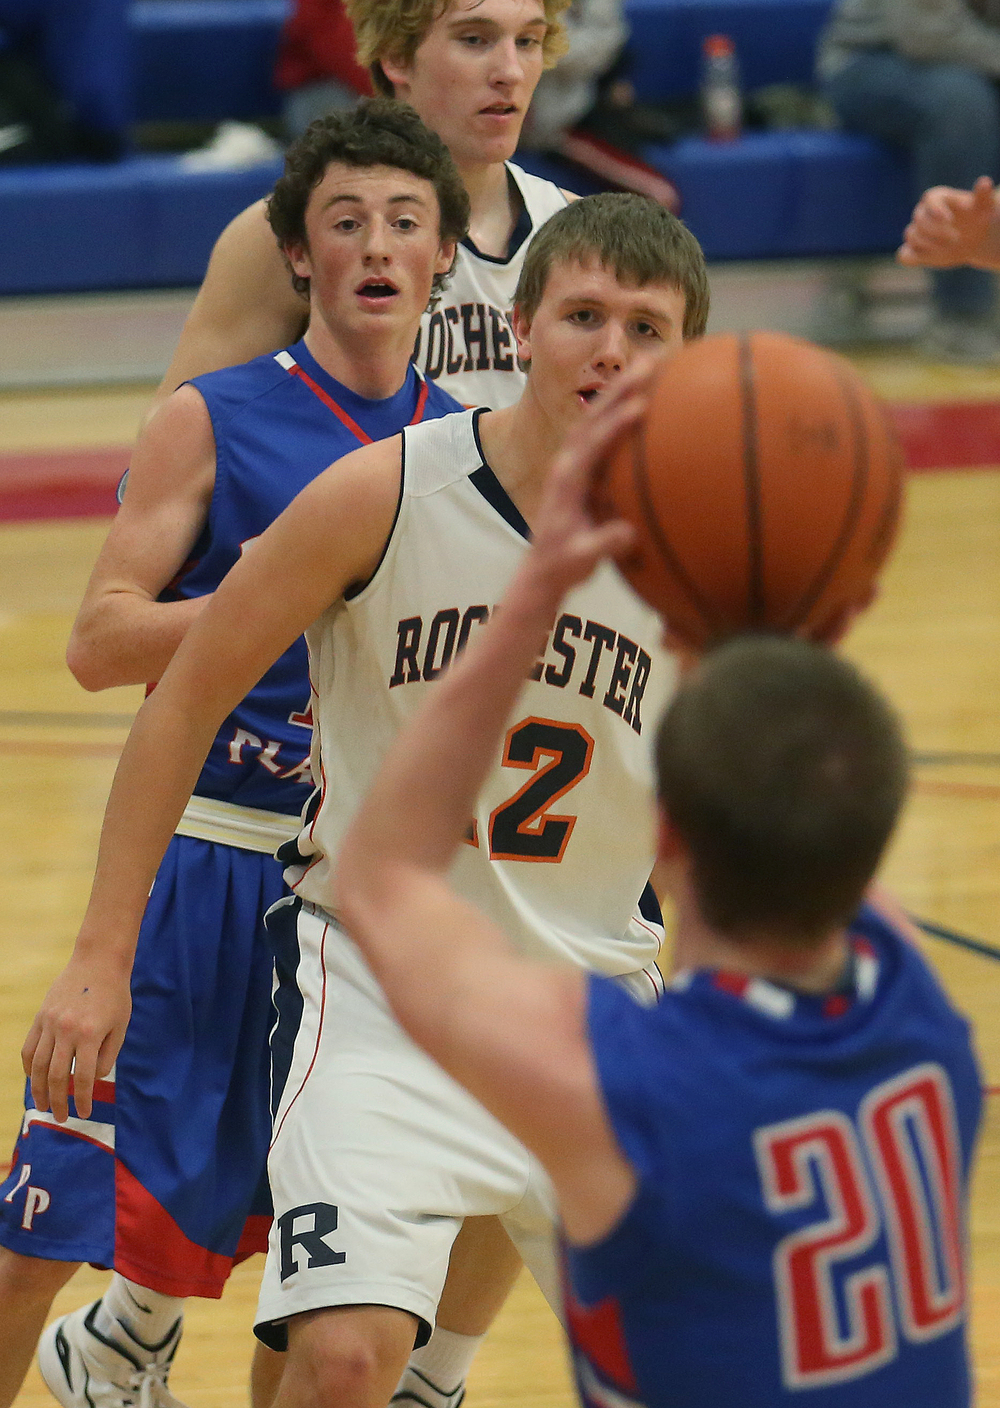 Pleasant Plains player Dylan Bee looks to pass to teammate Daulton Nibbe in a sandwich with Rochester defender Dan Zeigler. Rochester defeated Pleasant Plains 61-37 in a semifinal game at the Sangamon County Basketball Tournament at Cass gymnasium at Lincoln Land Community College in Springfield on Wednesday evening, Jan. 14, 2015. David Spencer/The State Journal-Register